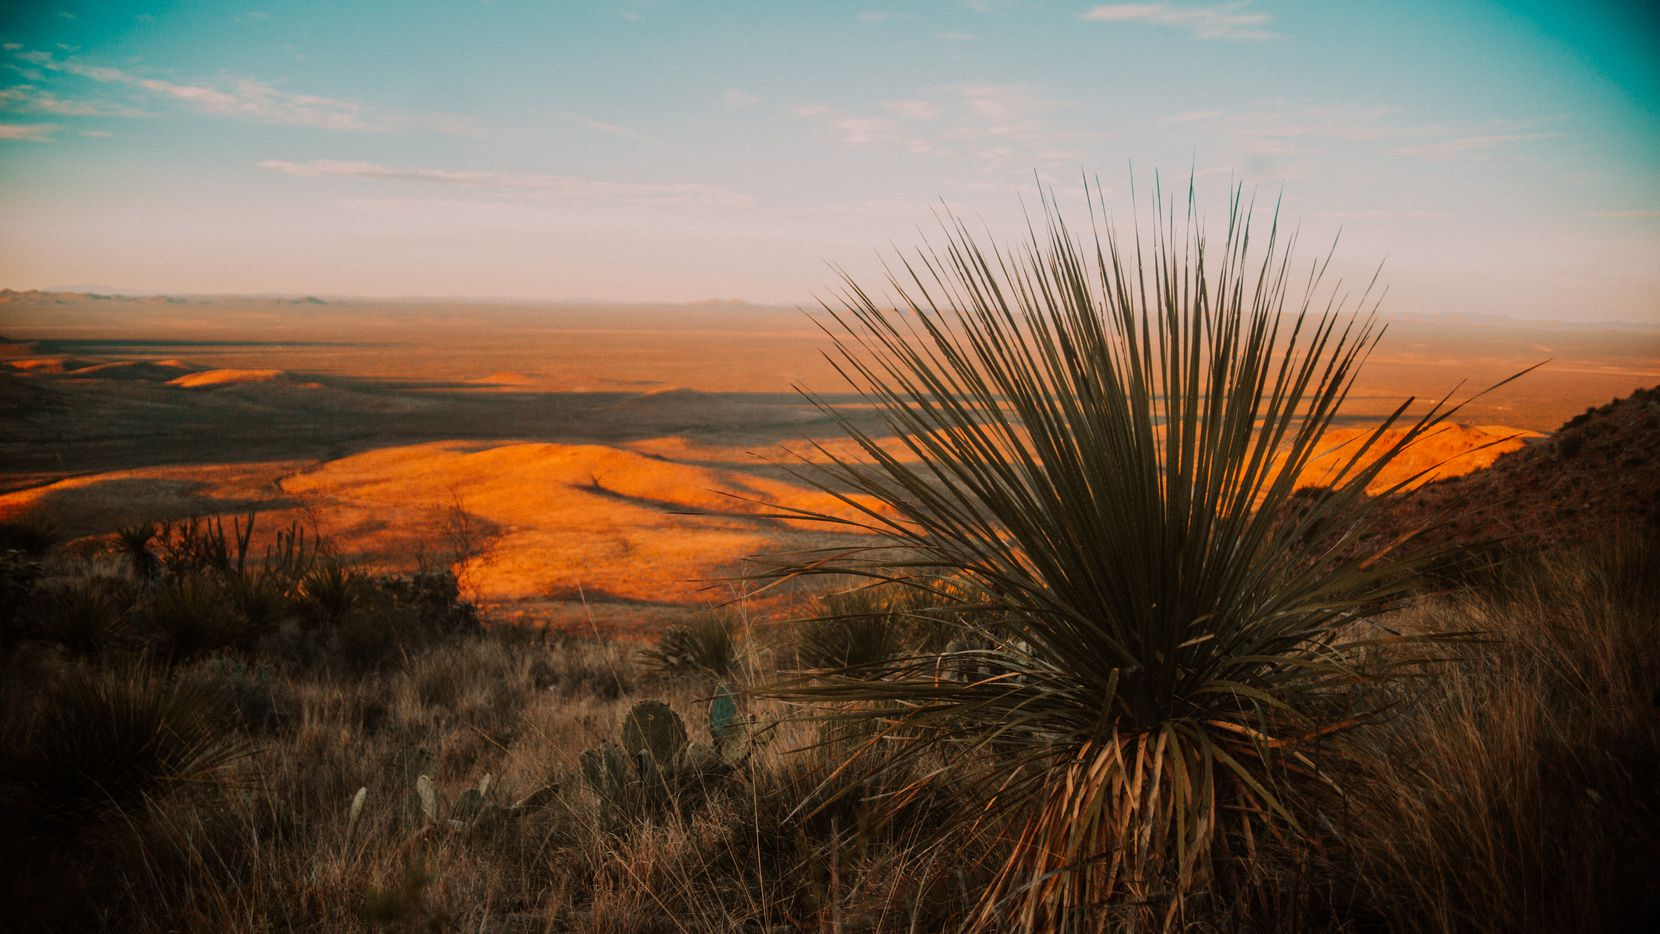 Sotol is a mezcal-like spirit made from a namesake plant that has grown wild for millennia in the Chihuahuan Desert regions of the U.S. and Mexico.